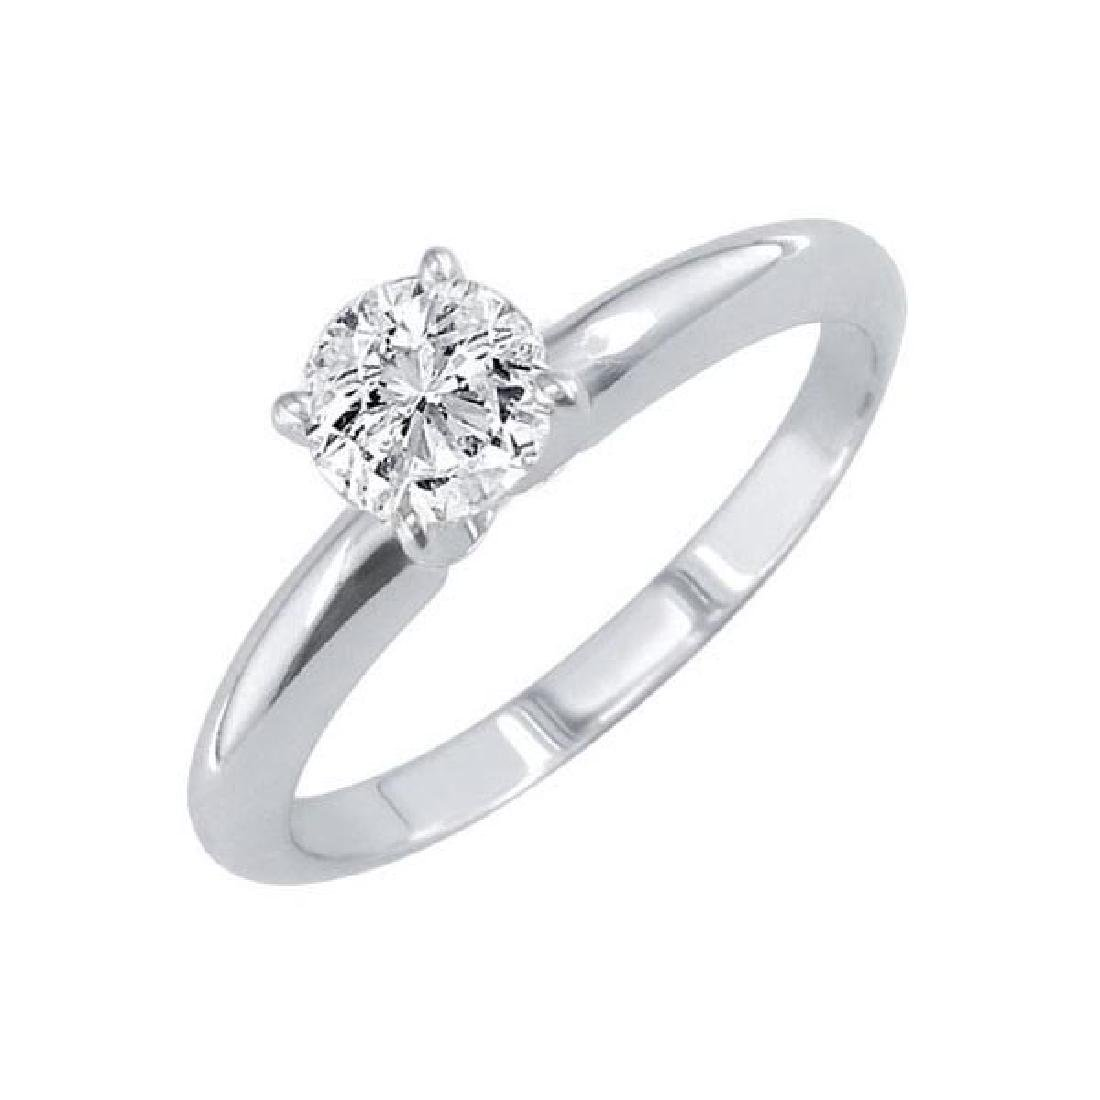 Certified 0.45 CTW Round Diamond Solitaire 14k Ring D/S